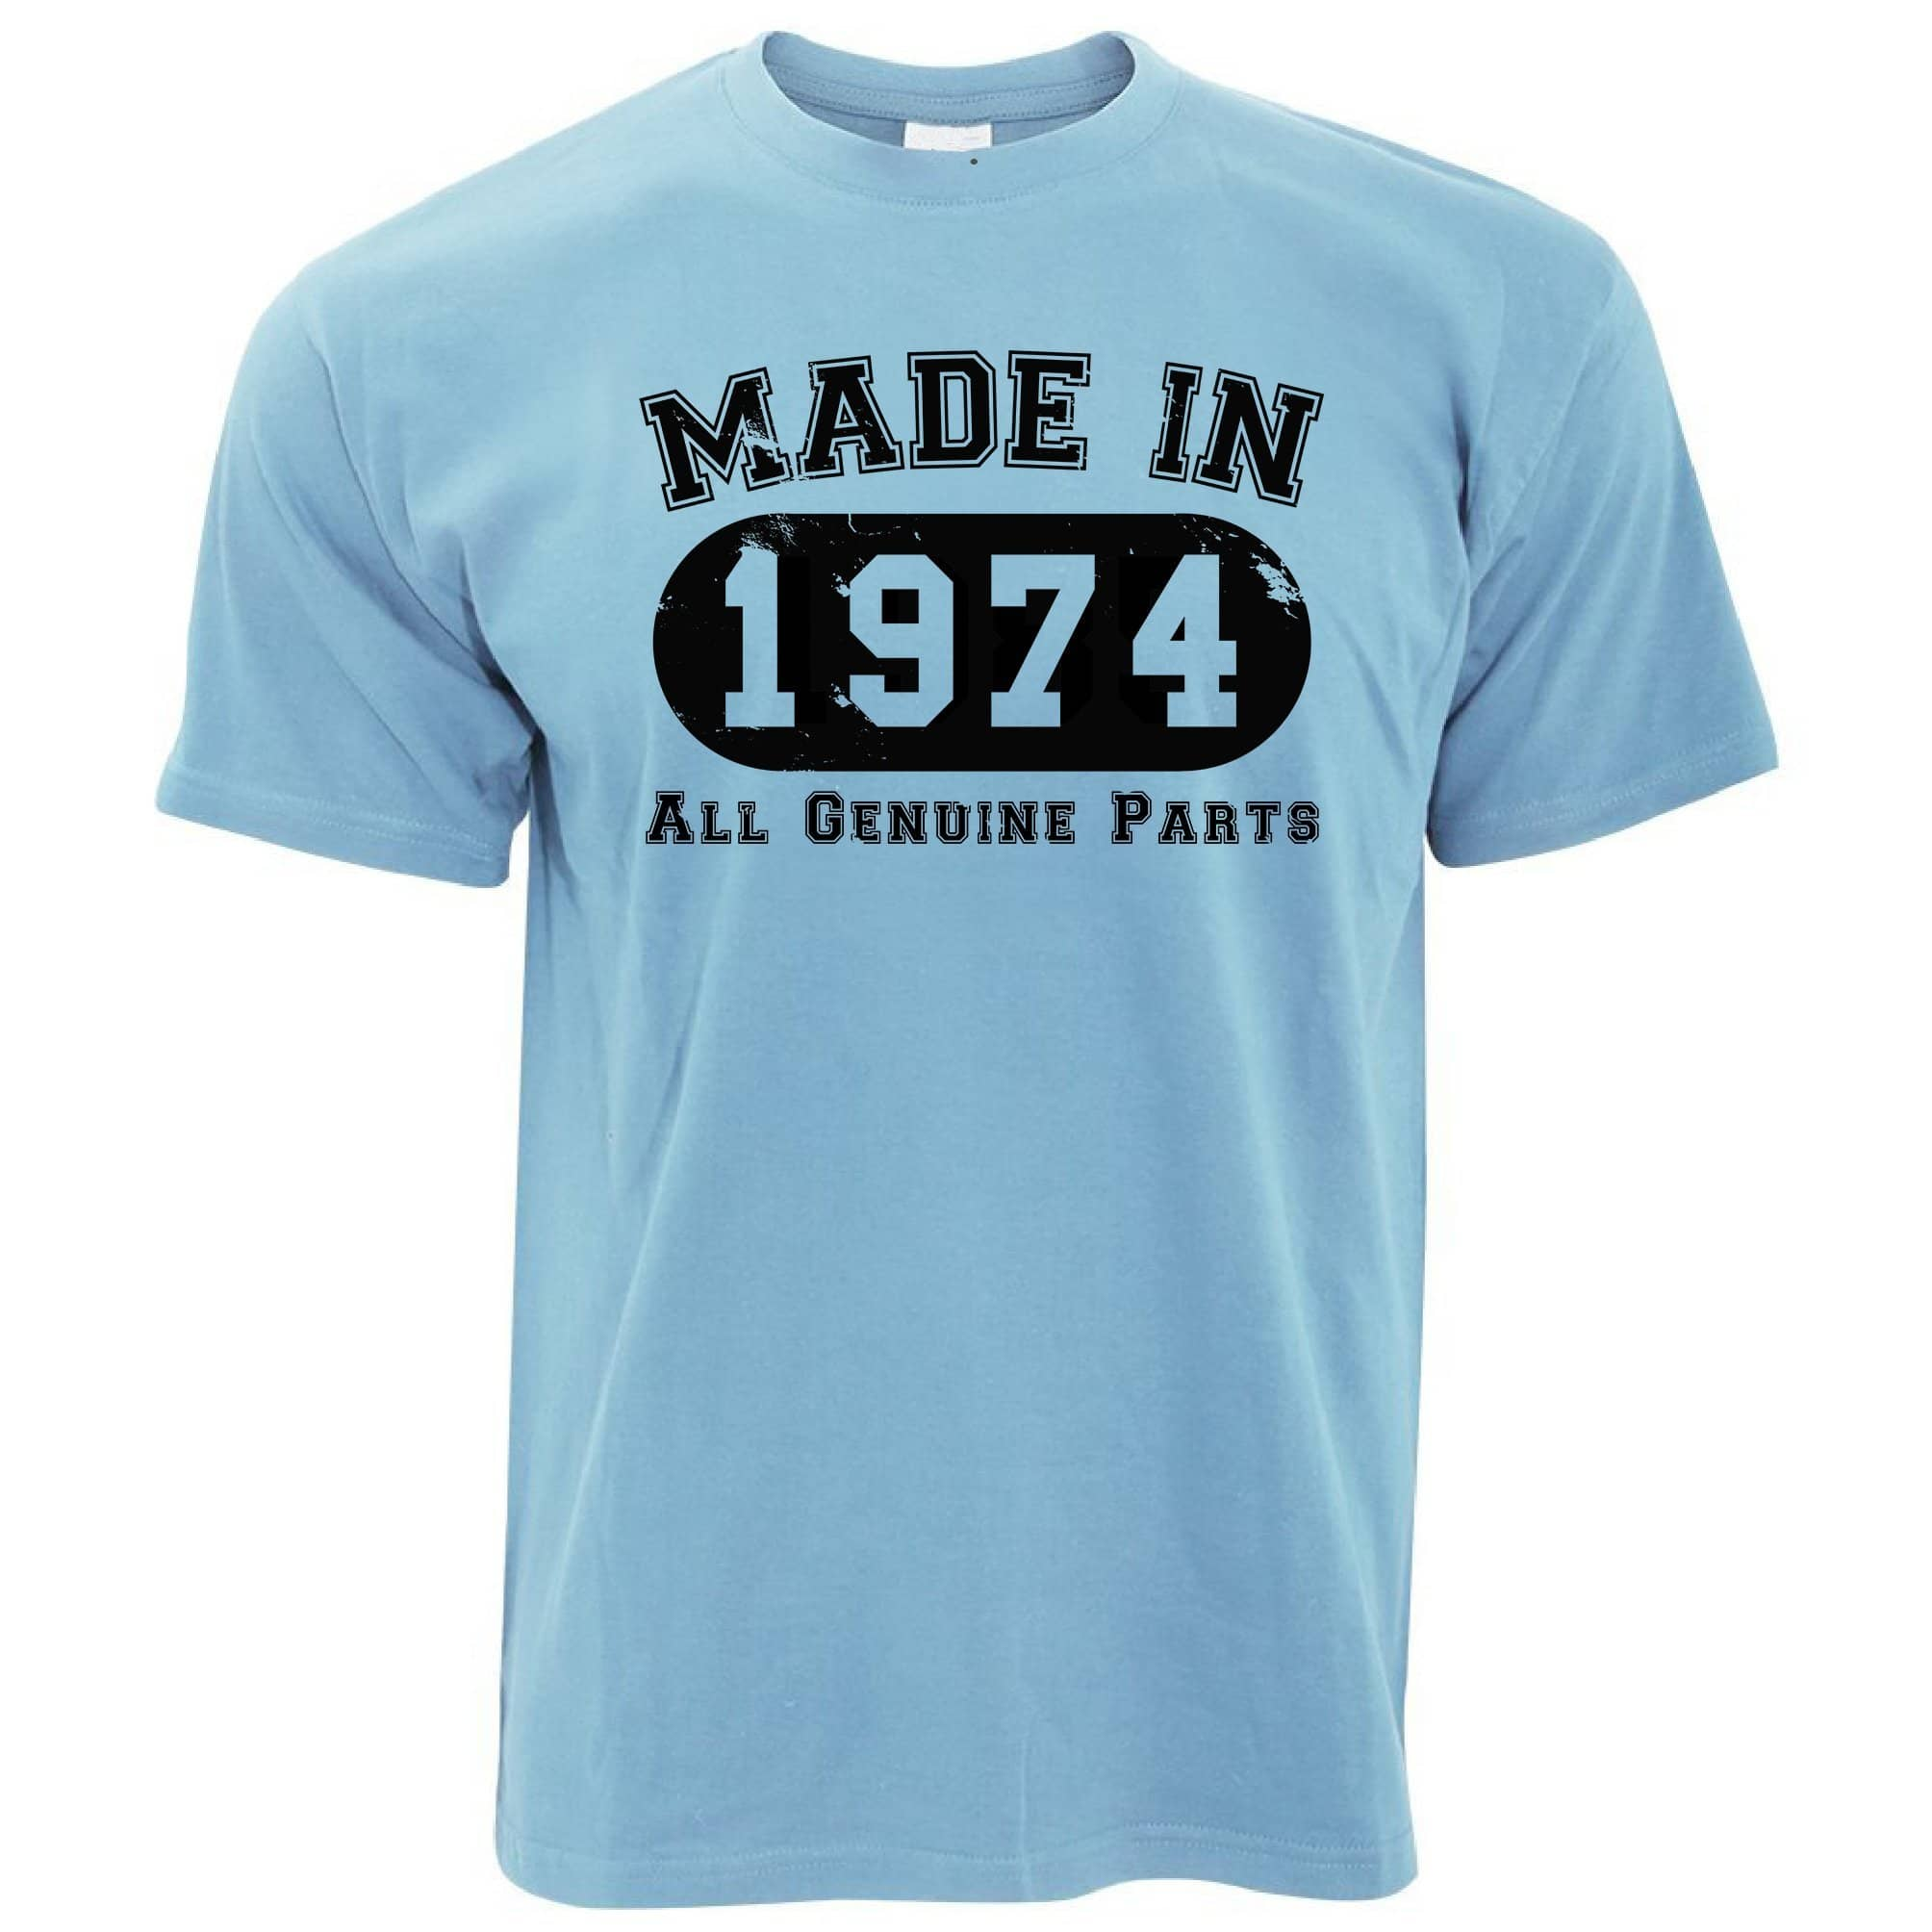 Birthday T Shirt Made in 1974 All Genuine Parts